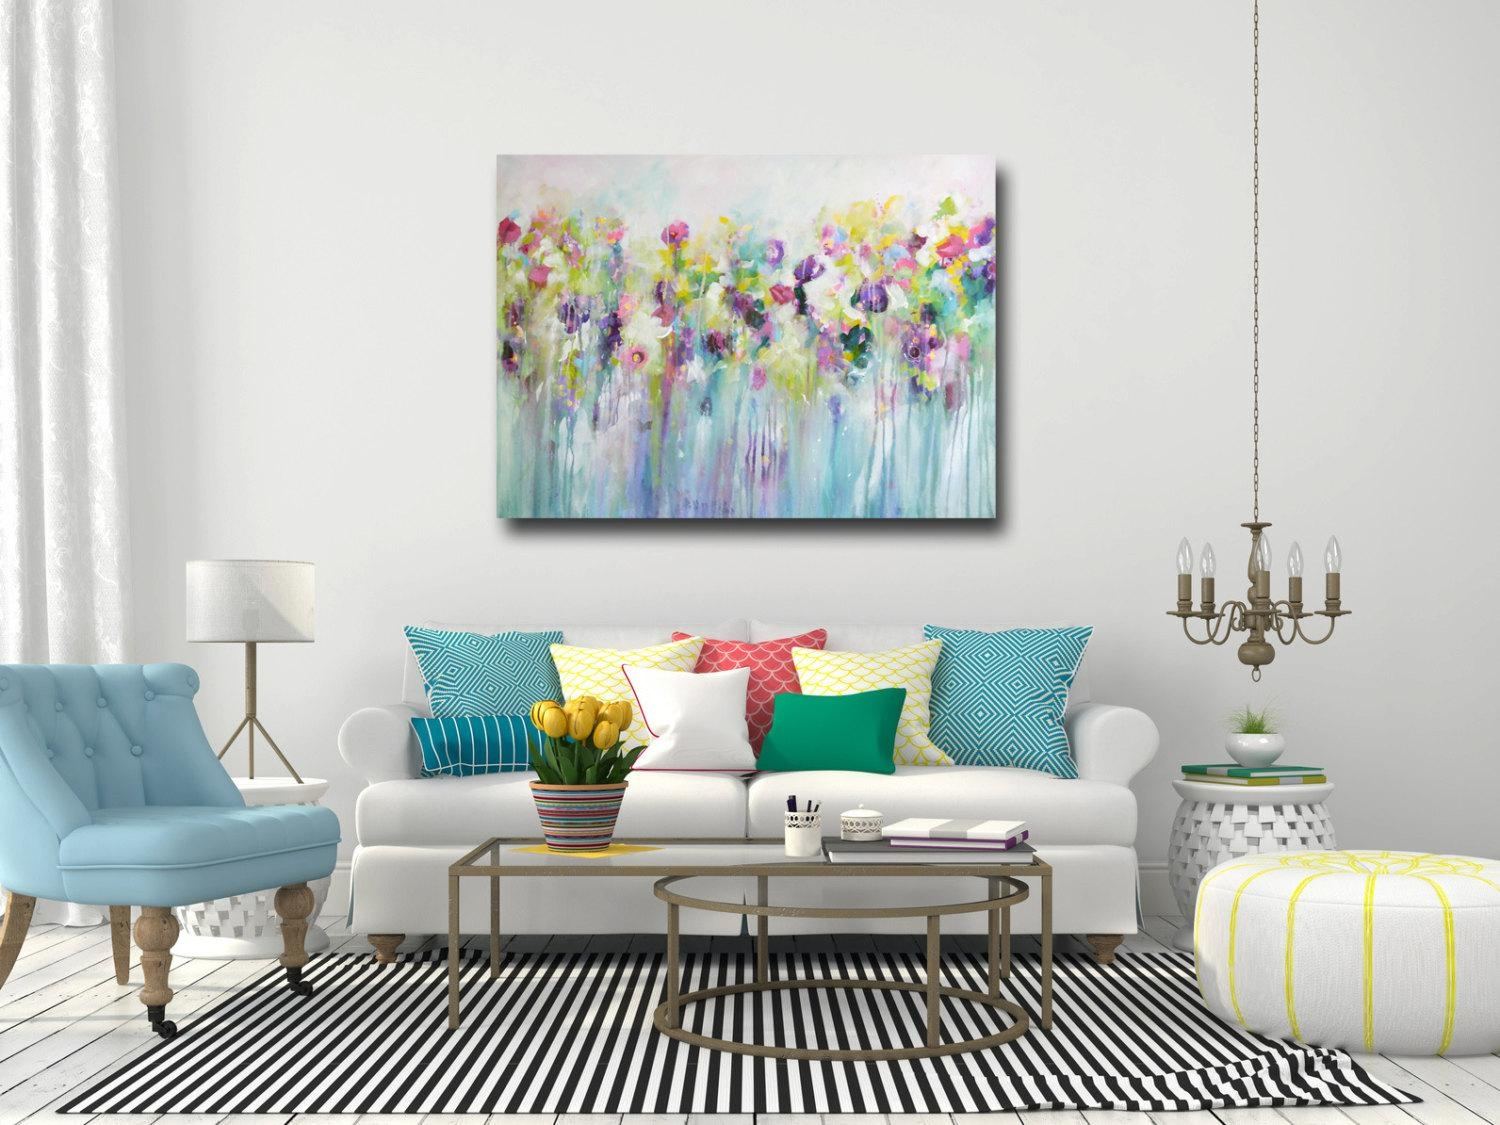 Large Wall Art Canvas Art Abstract Floral Canvas Print Pertaining To Big Canvas Wall Art (Image 10 of 21)